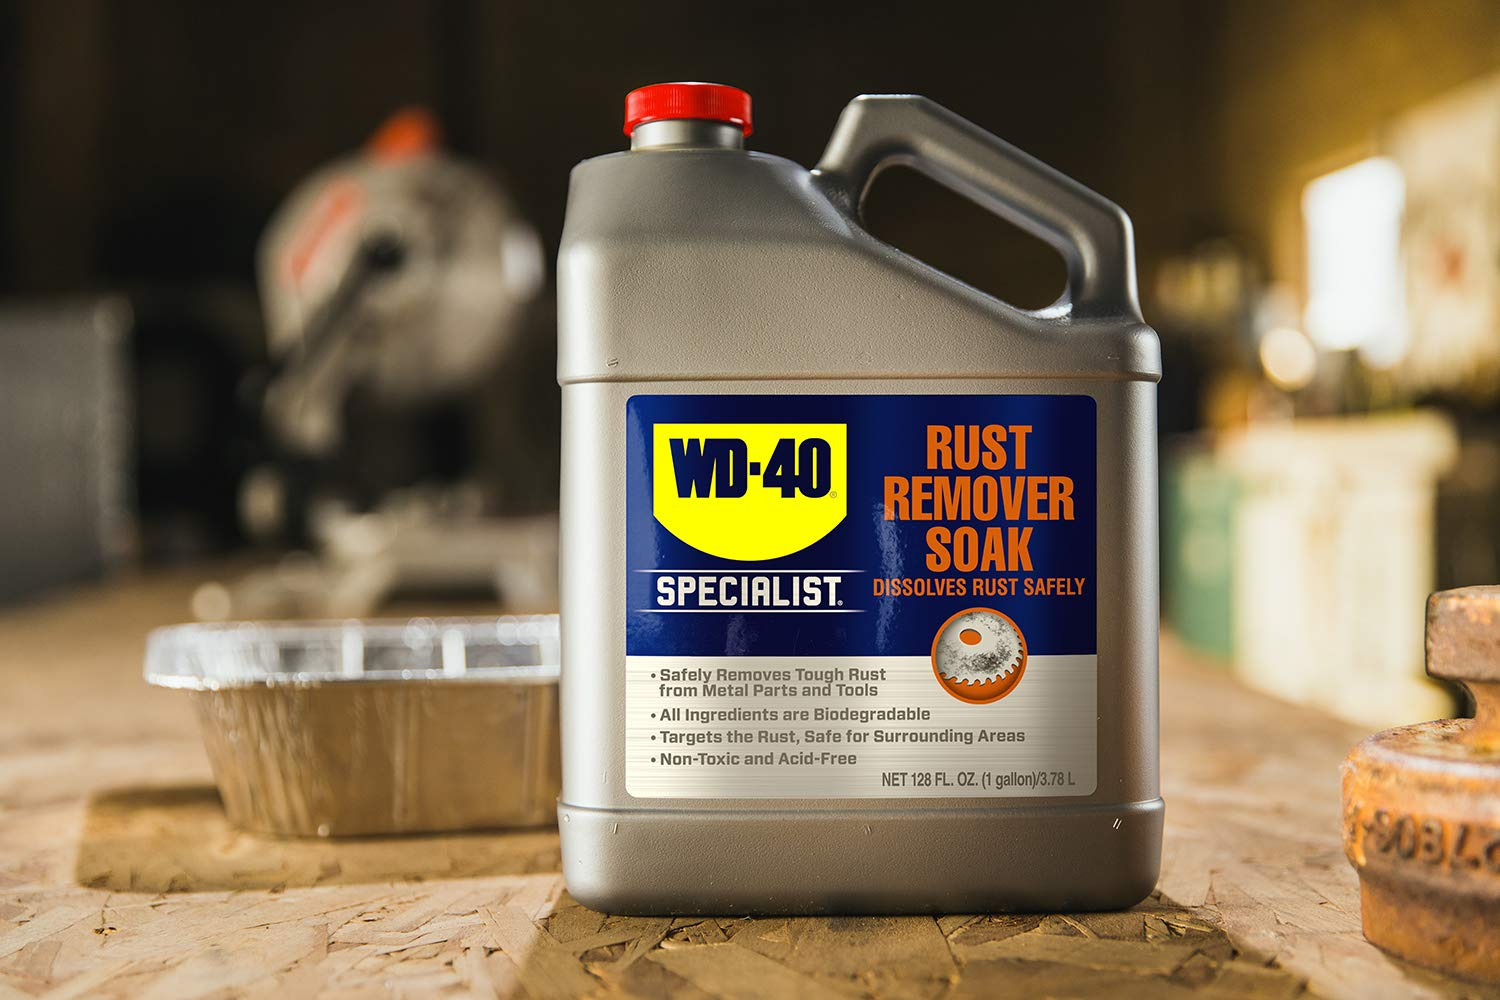 wd-40 rust remover